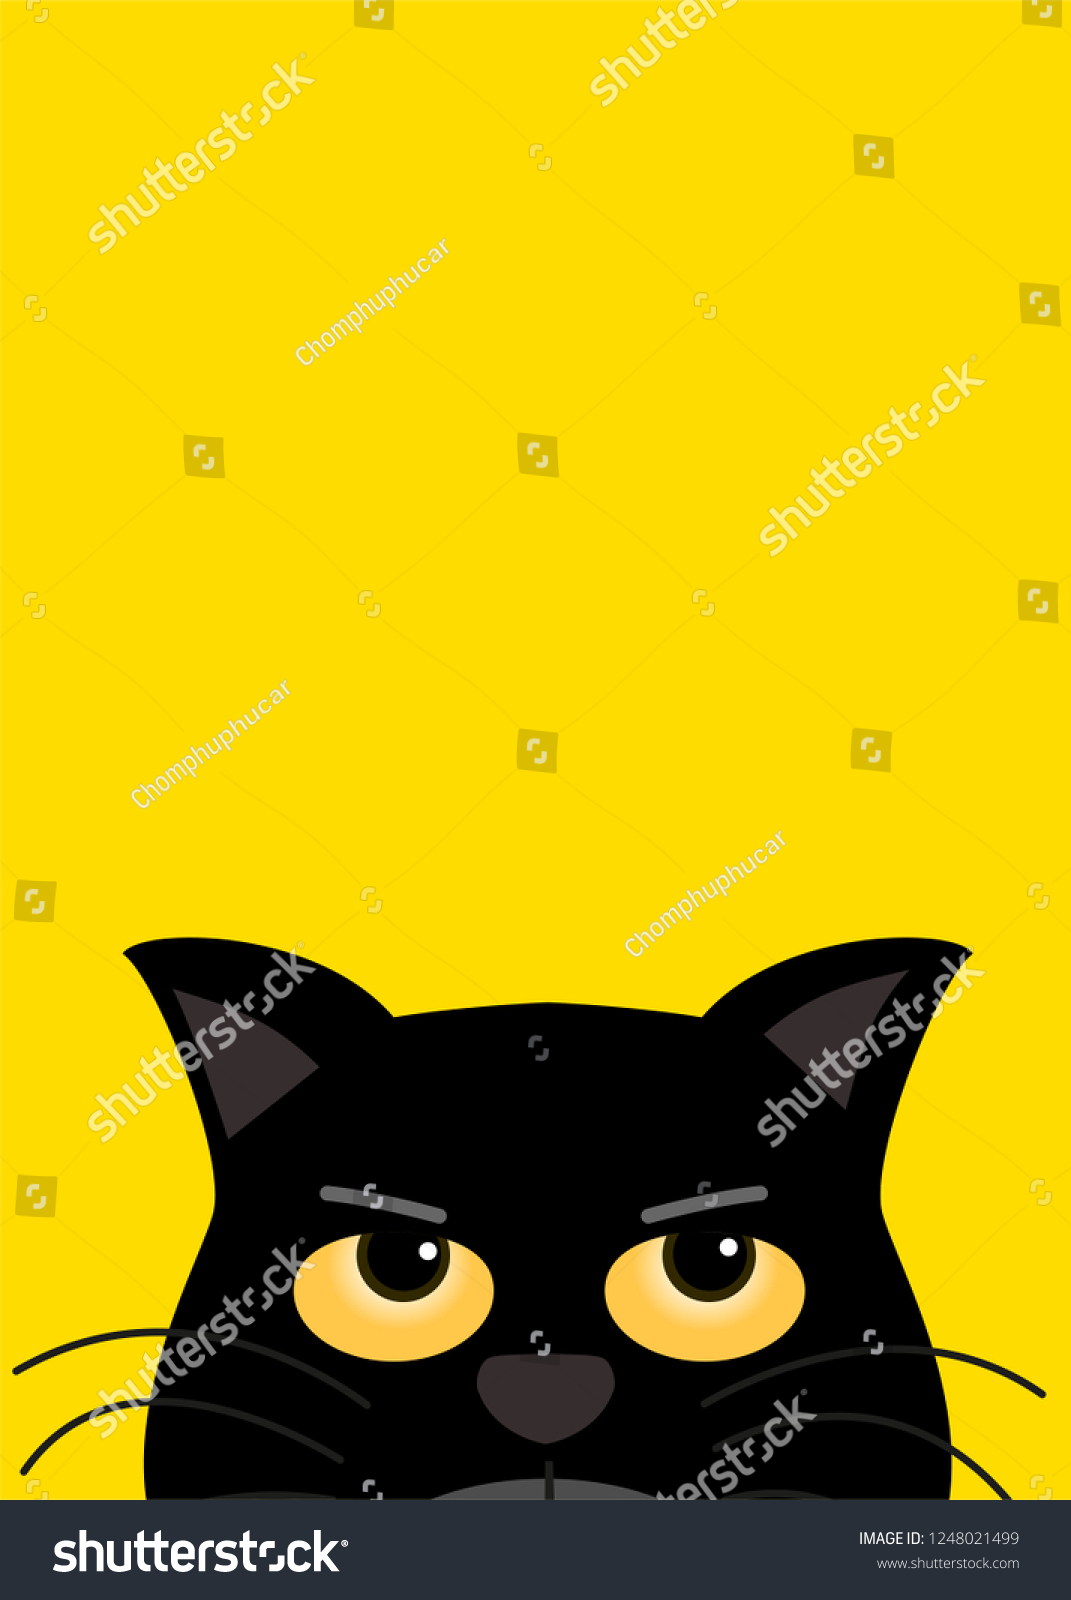 Black Cat Yellow Eye Look On Stock Vector Royalty Free 1248021499